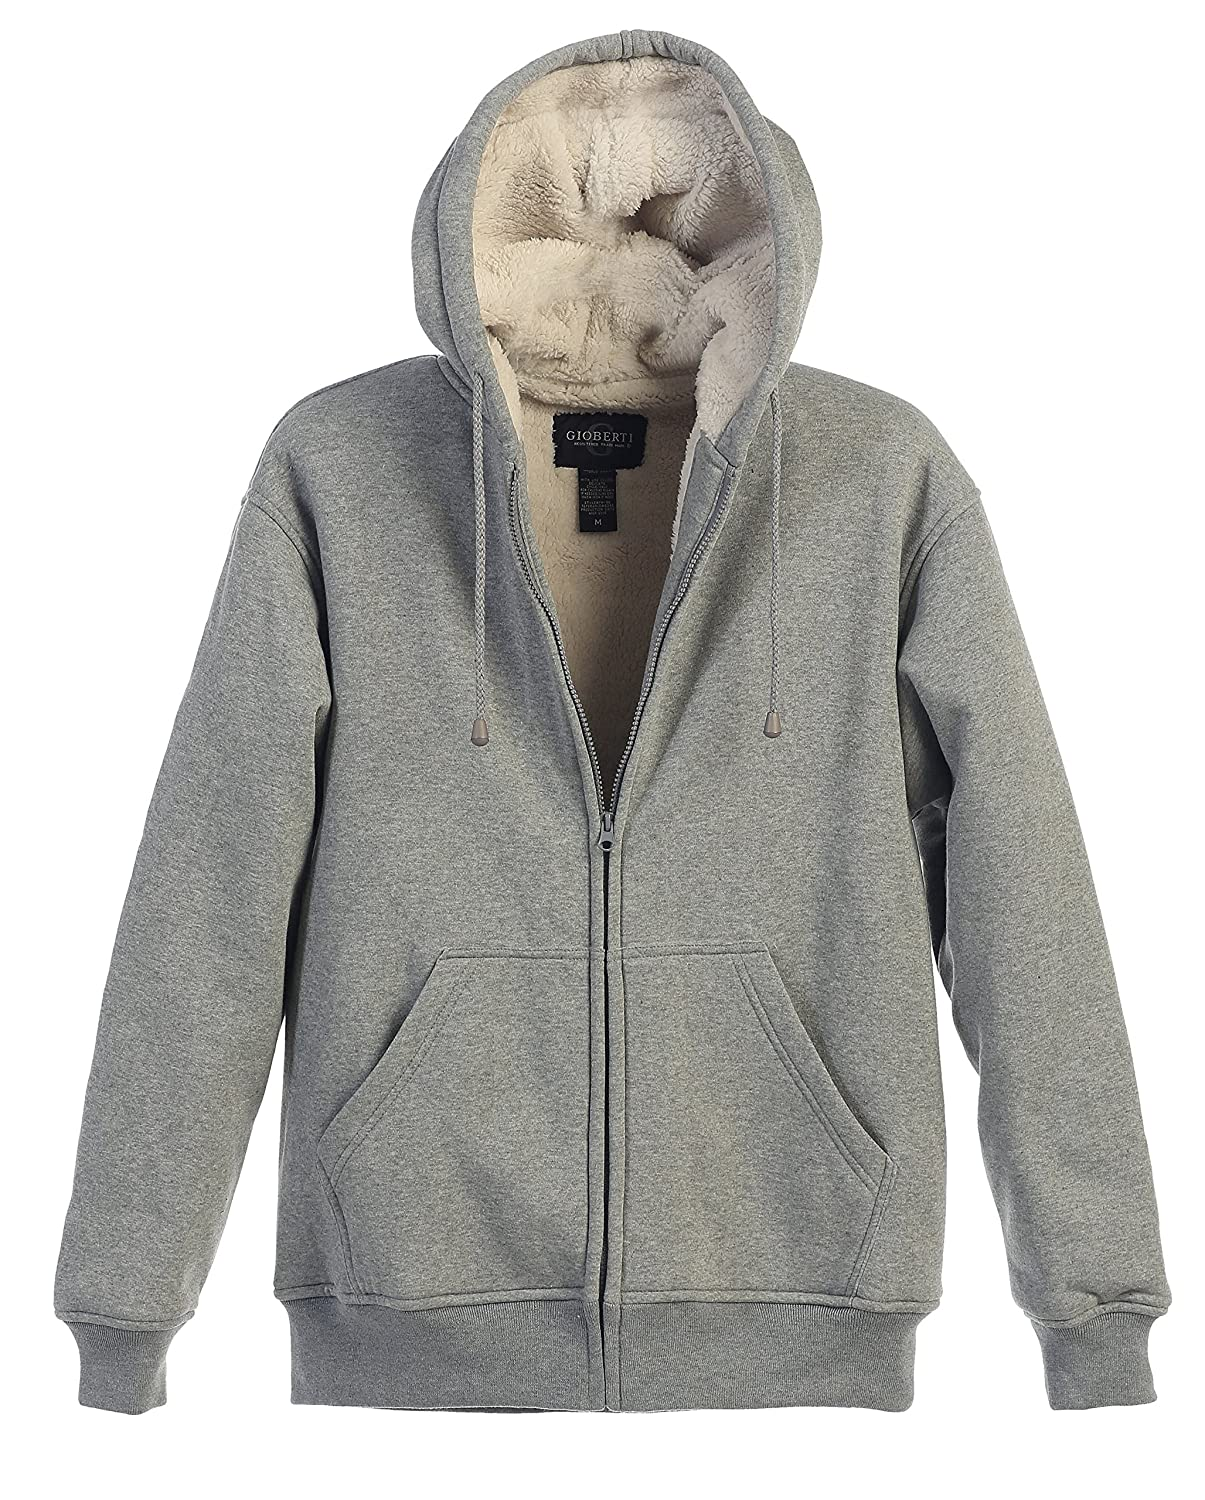 Gioberti Boys Sherpa Lined Zip Up Fleece Hoodie Jacket FH-86